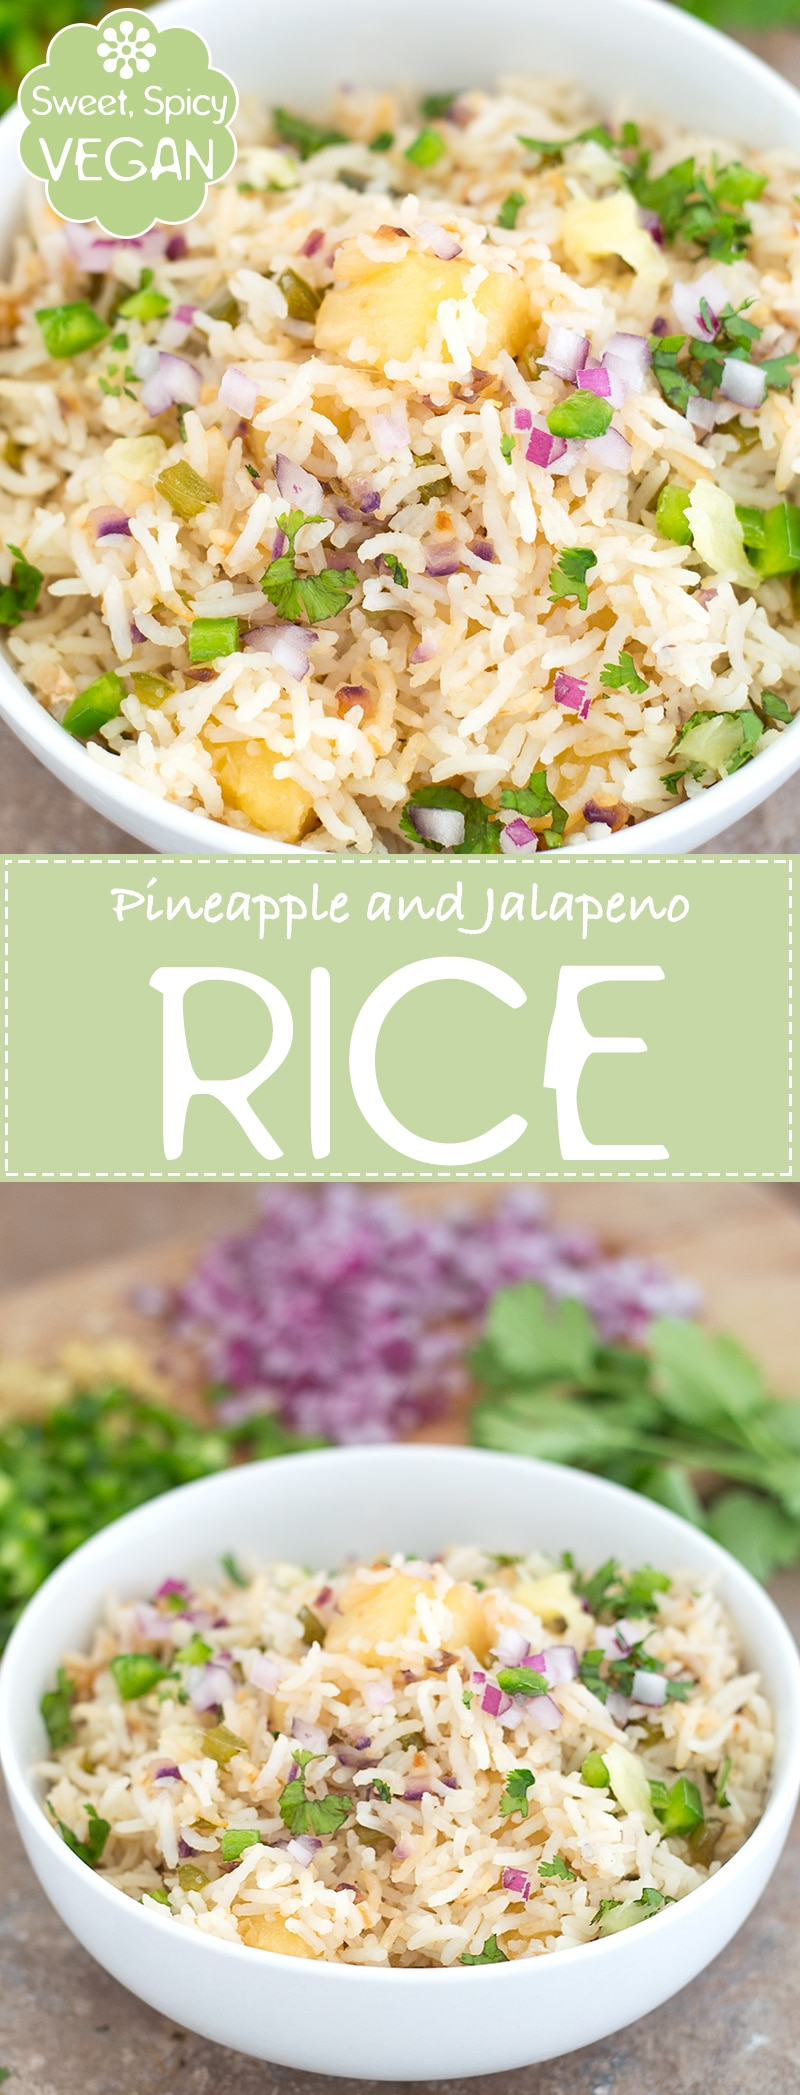 Quick and Easy Fried Rice Made with Pineapples and Jalapeno. This Vegan Pineapple Rice is the Perfect Side Dish or and a Lunch Recipe.